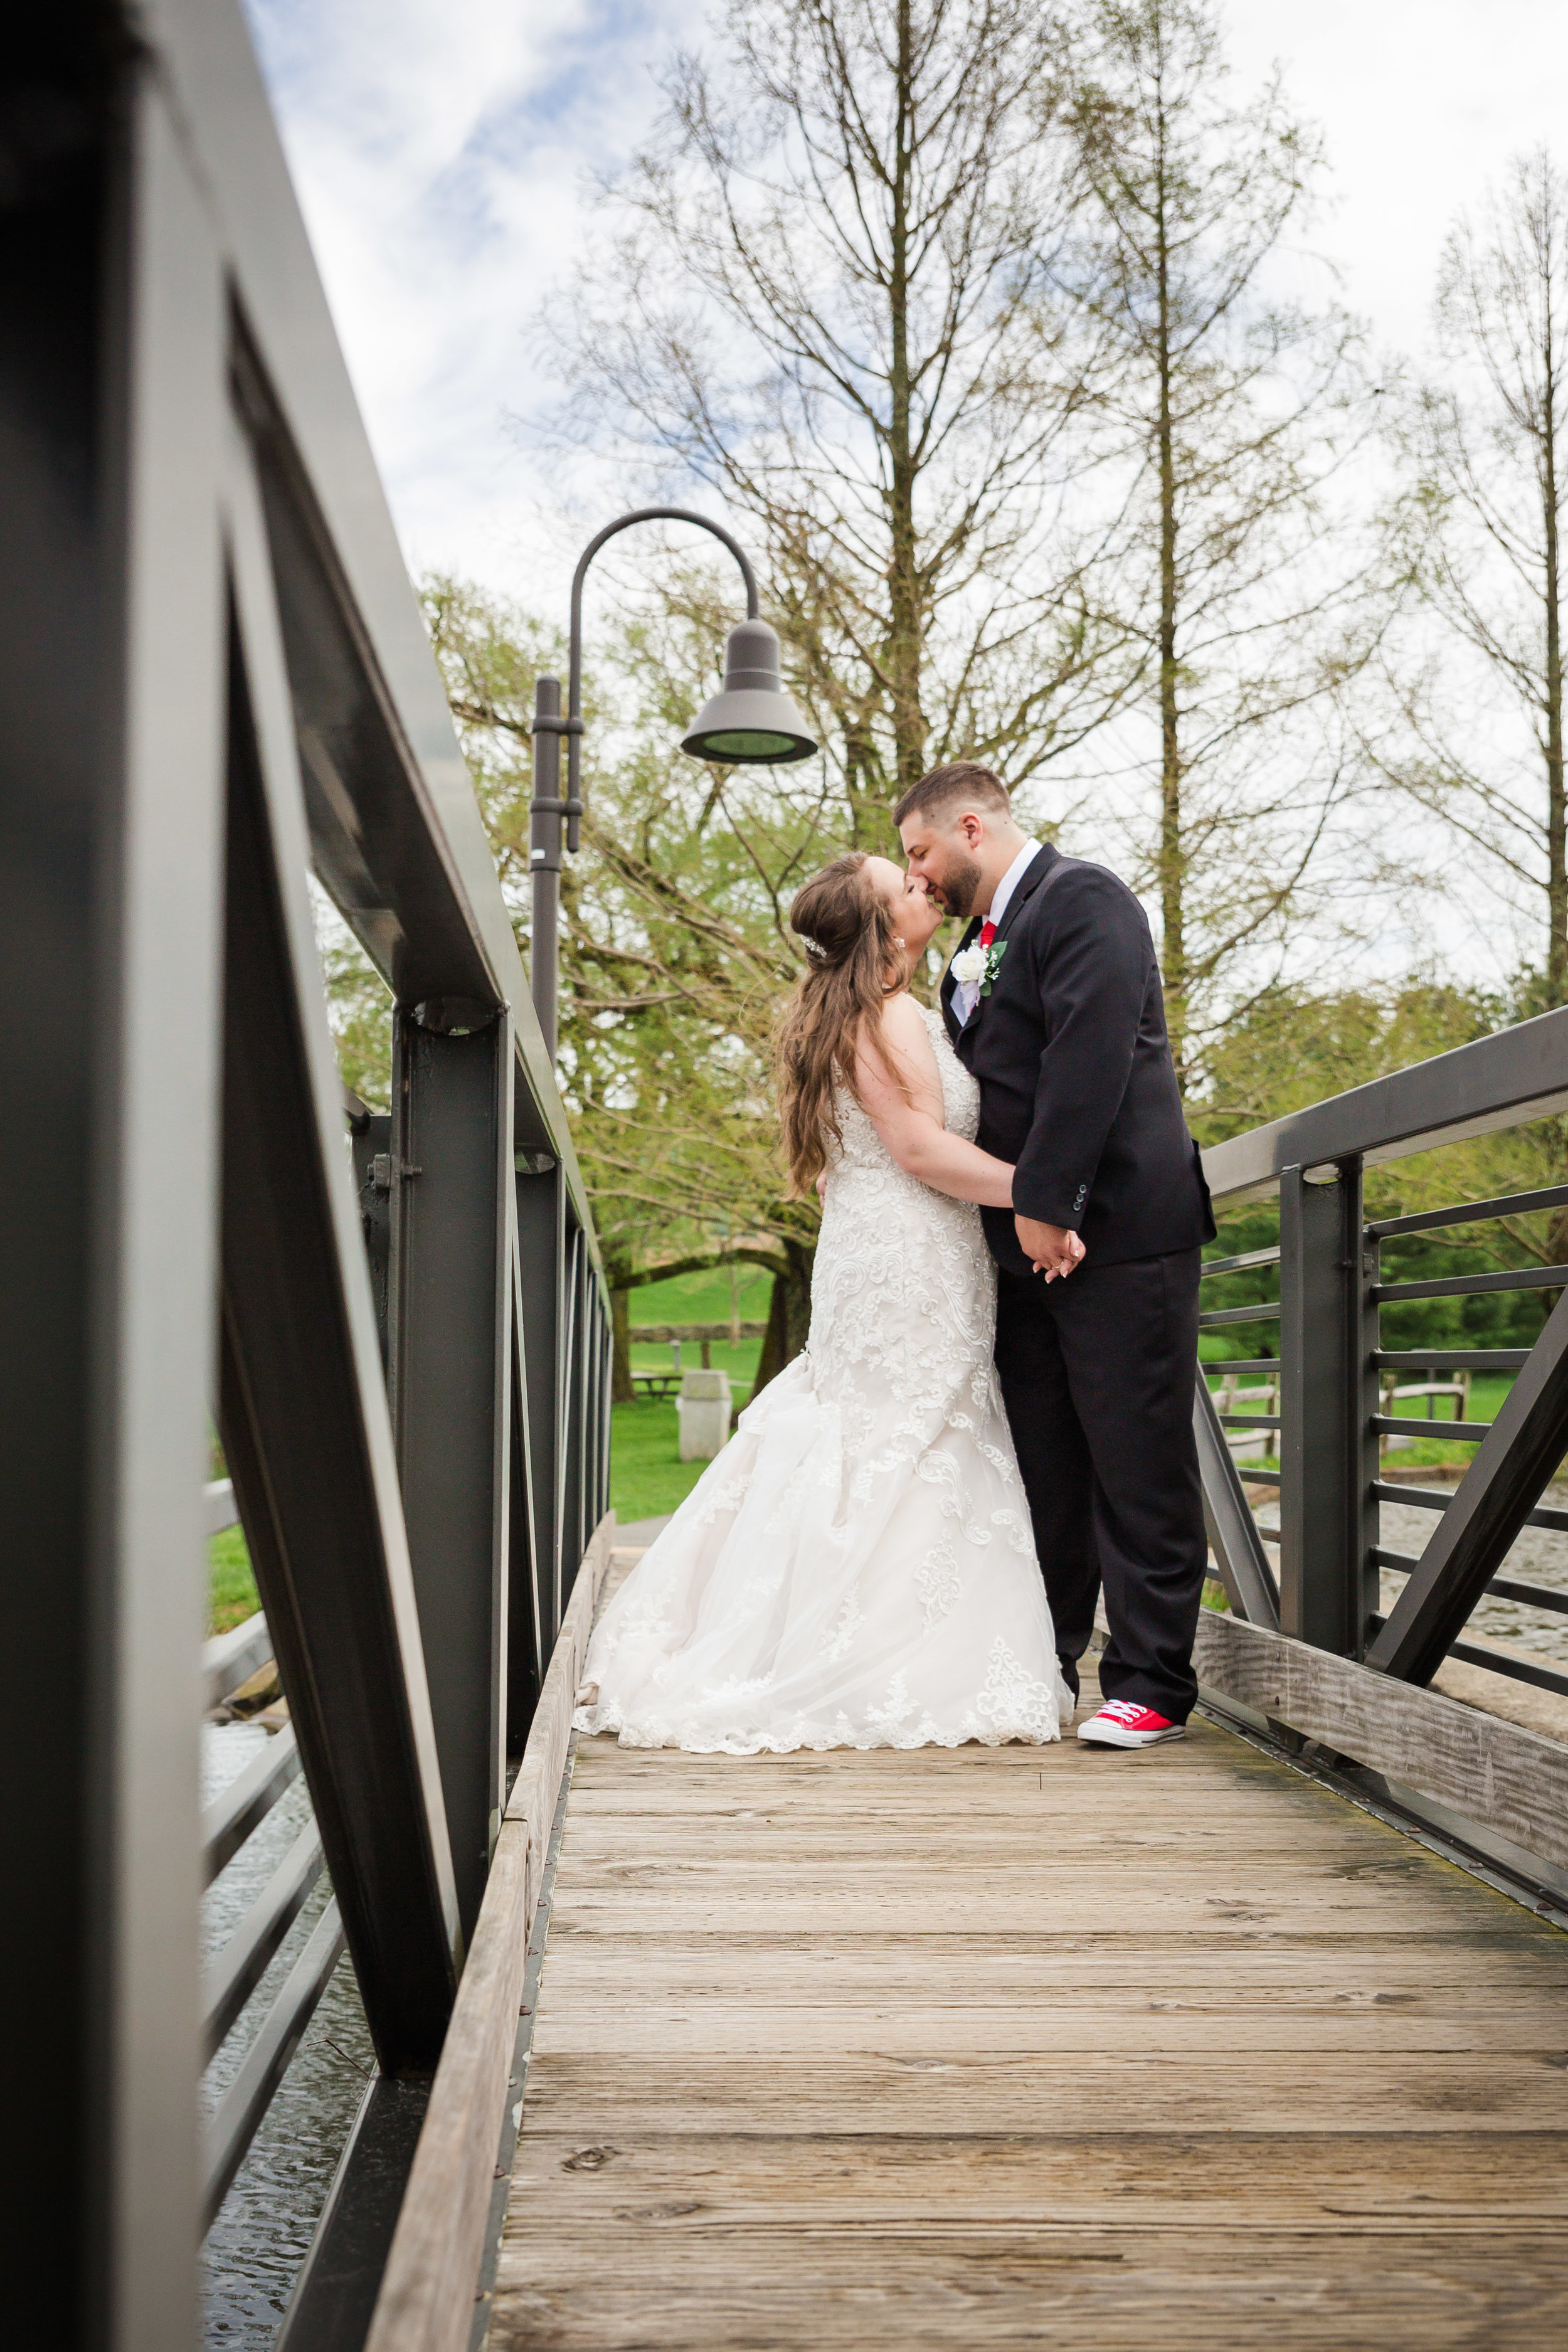 CHAUNCEY HOTEL AND CONFERENCE CENTER WEDDING PHOTOGRAPHY-77.jpg